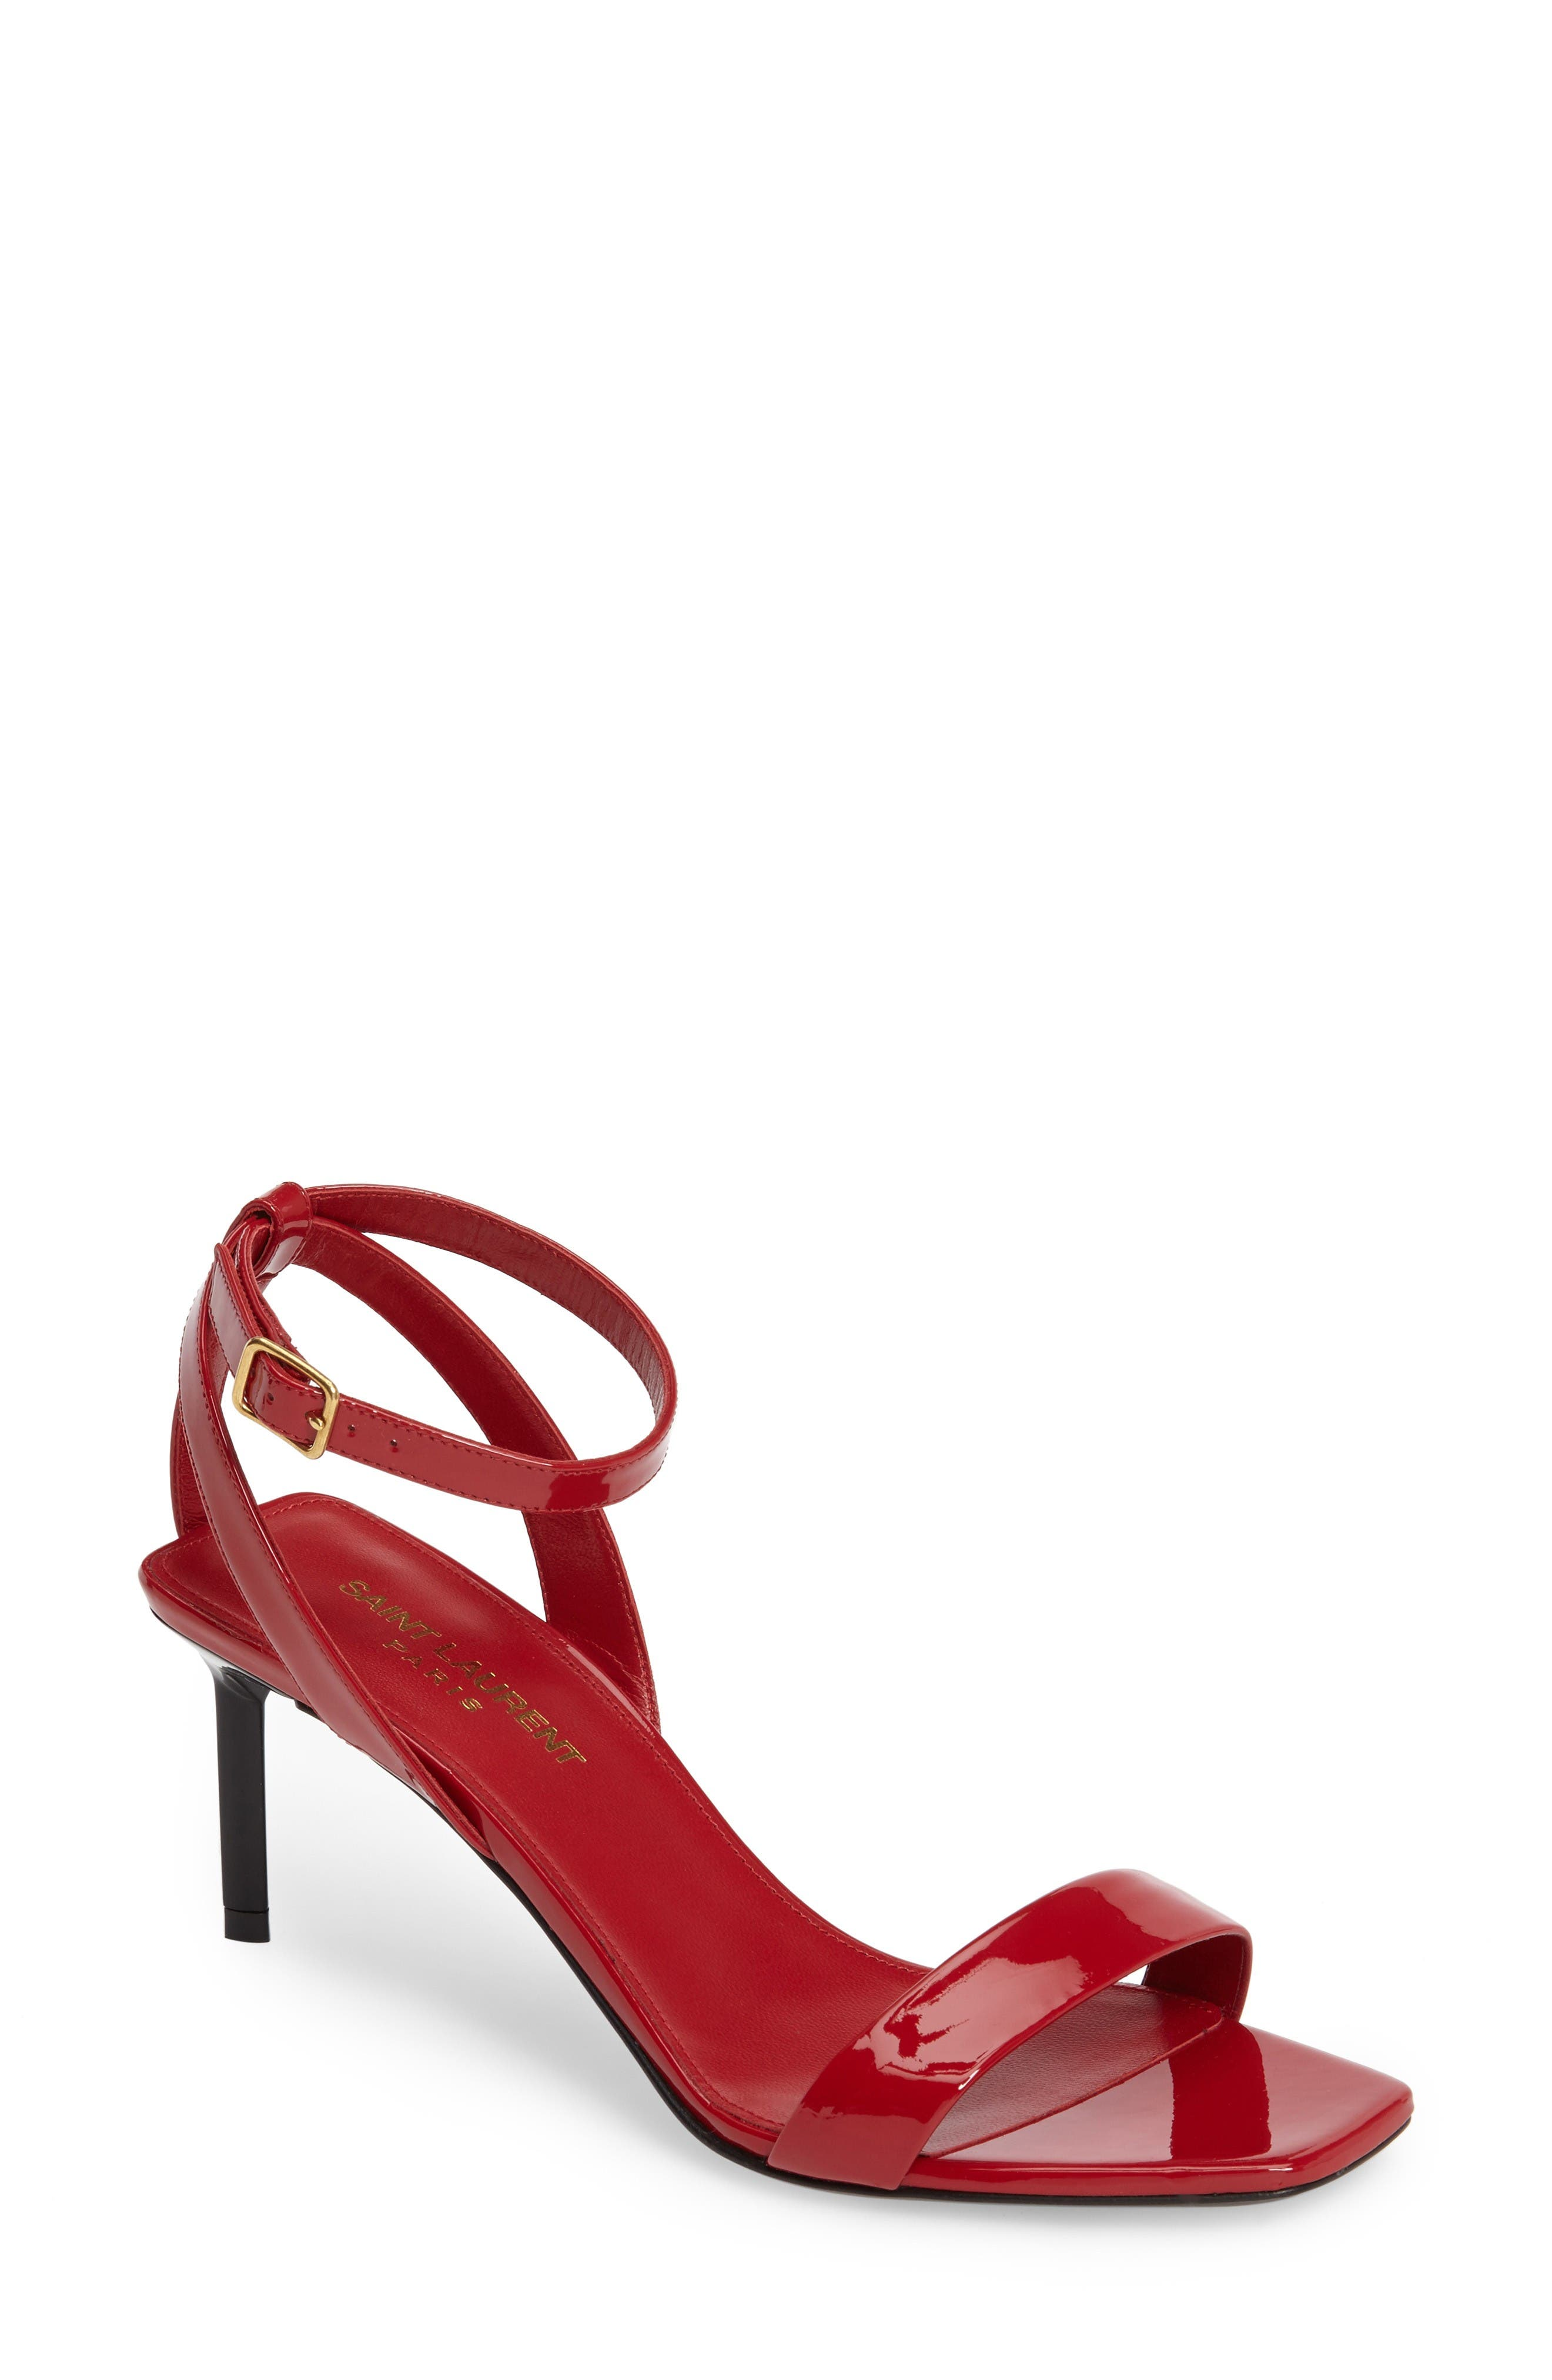 Saint Laurent Edie Ankle Strap Sandal (Women)